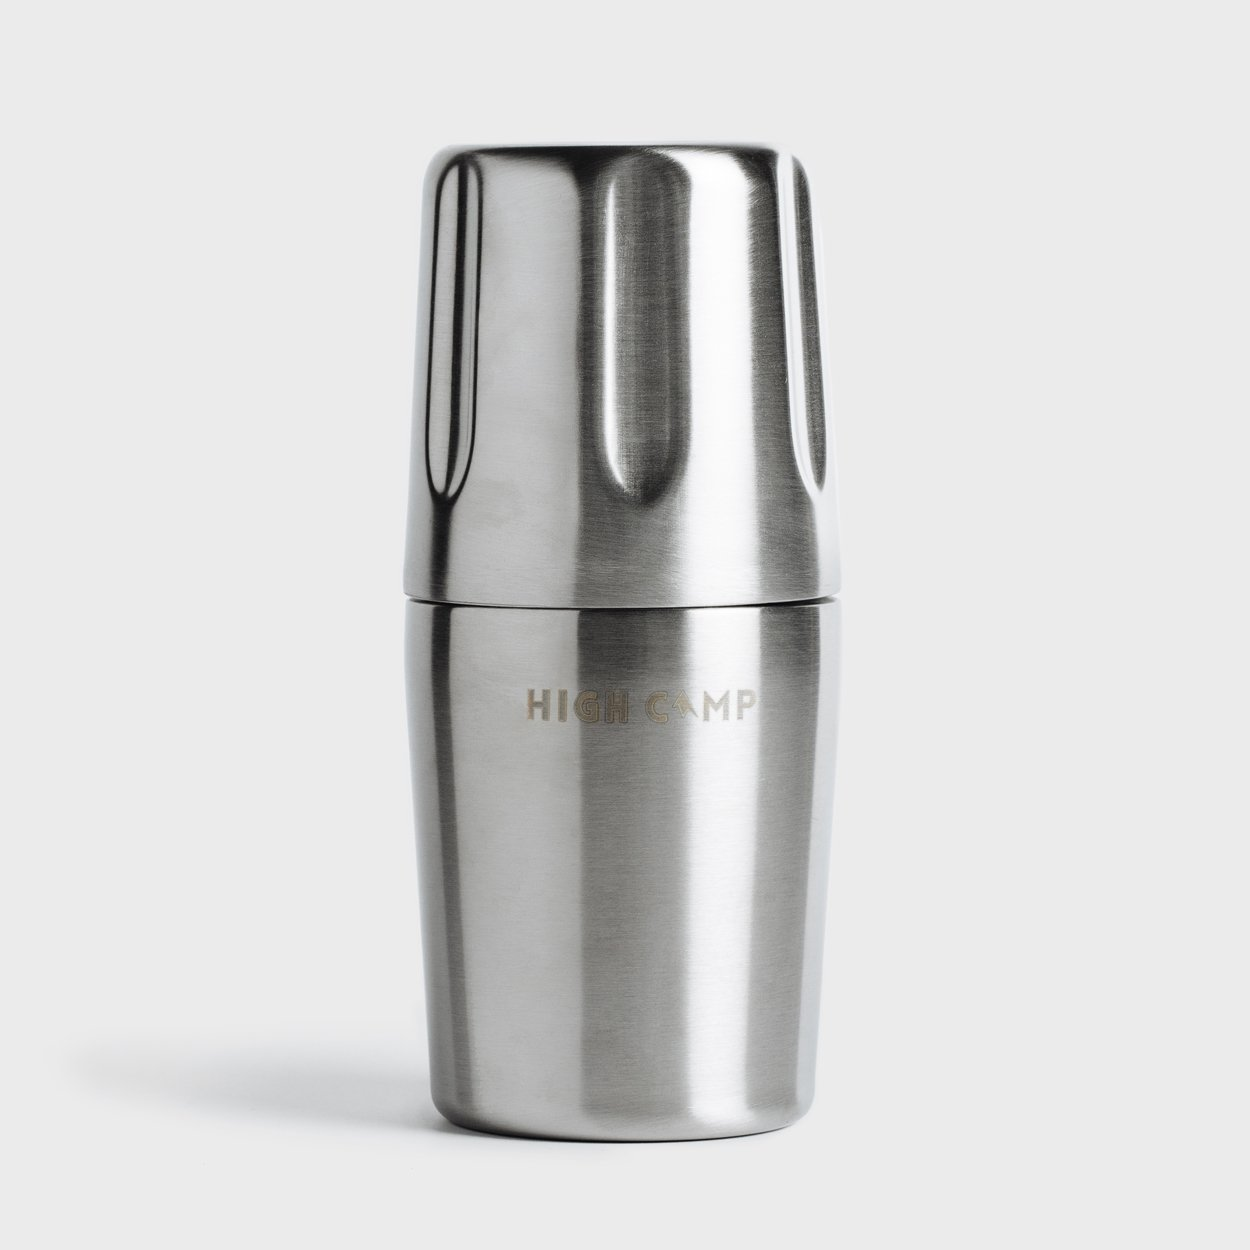 High Camp Halflight Flask 375ml